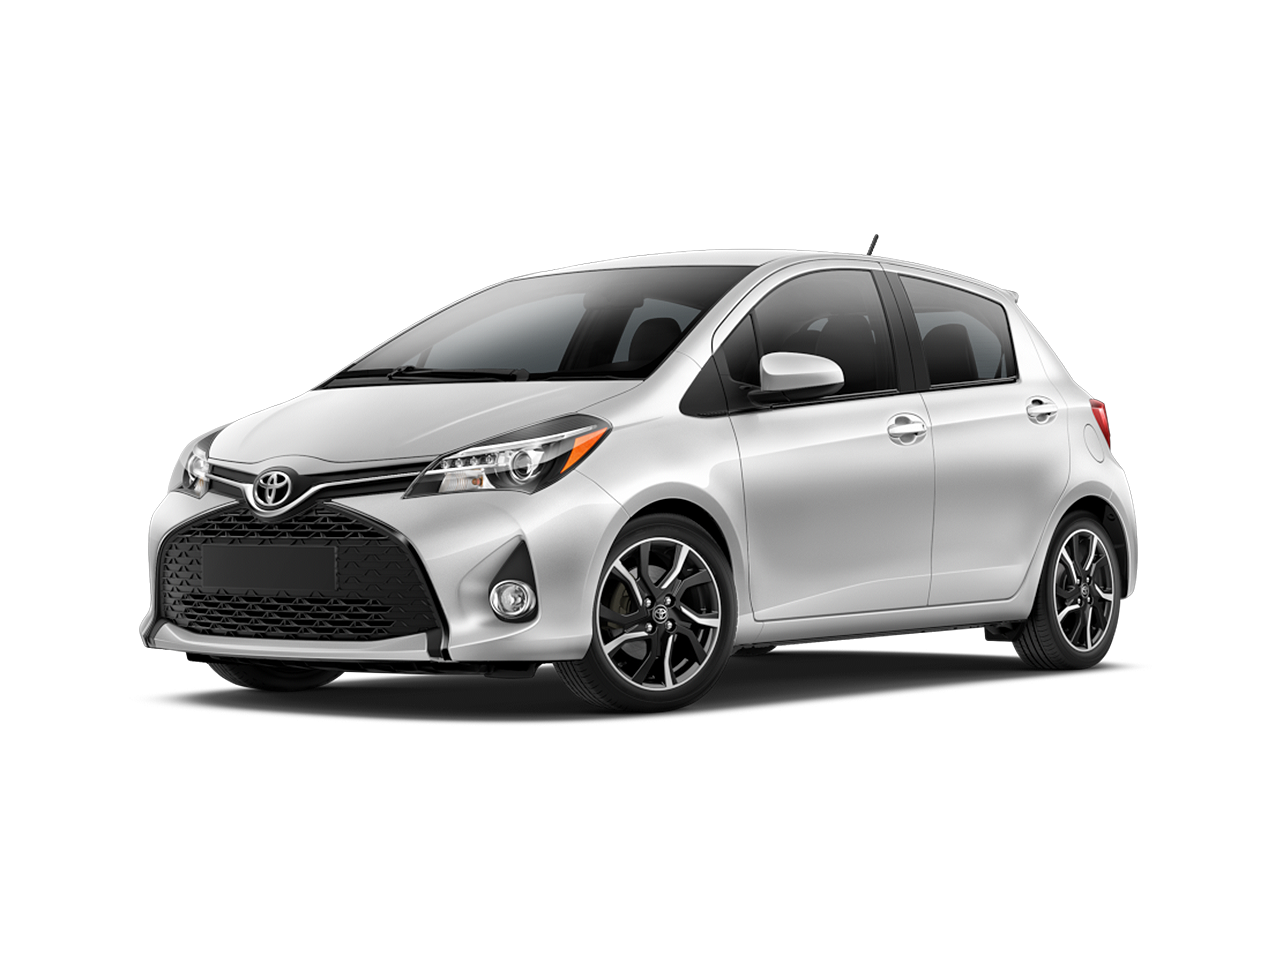 Test Drive A 2017 Toyota Yaris at Toyota of El Cajon near San Diego